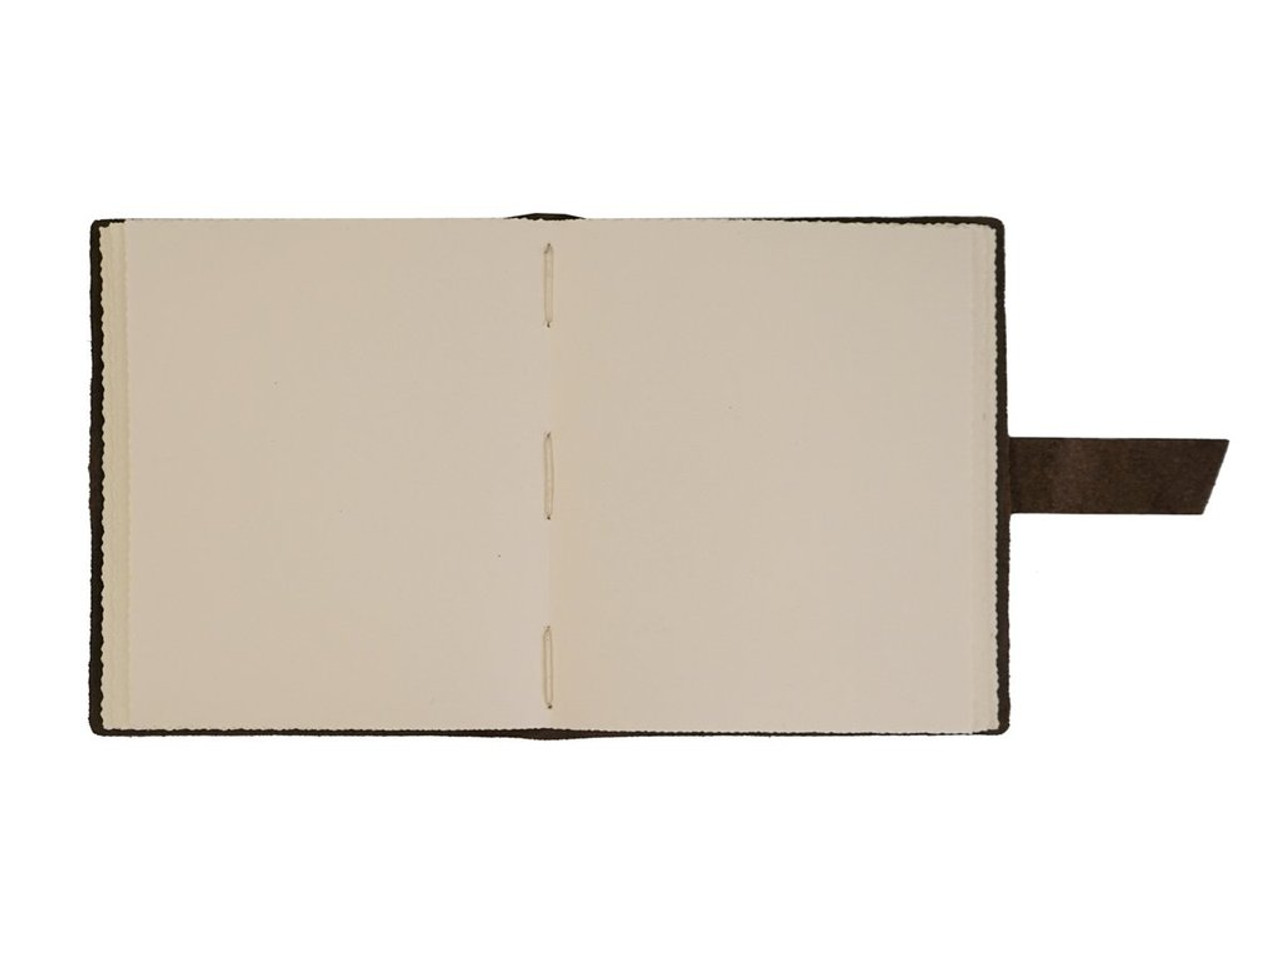 Rustico travelers journal with buckle - inside with paper